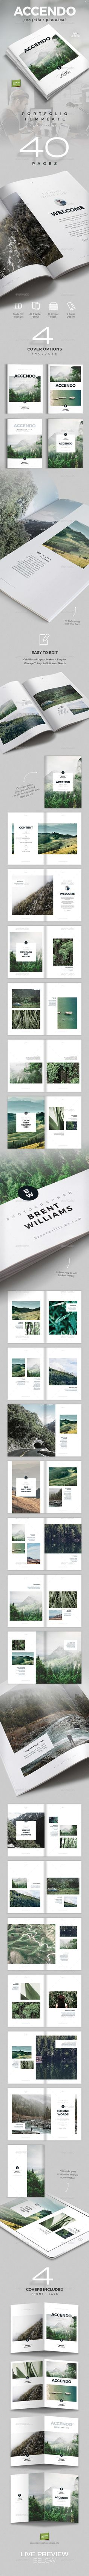 Accendo - Portfolio / Photobook / Brochure / Catalog - 40 Pages - A4 and Letter